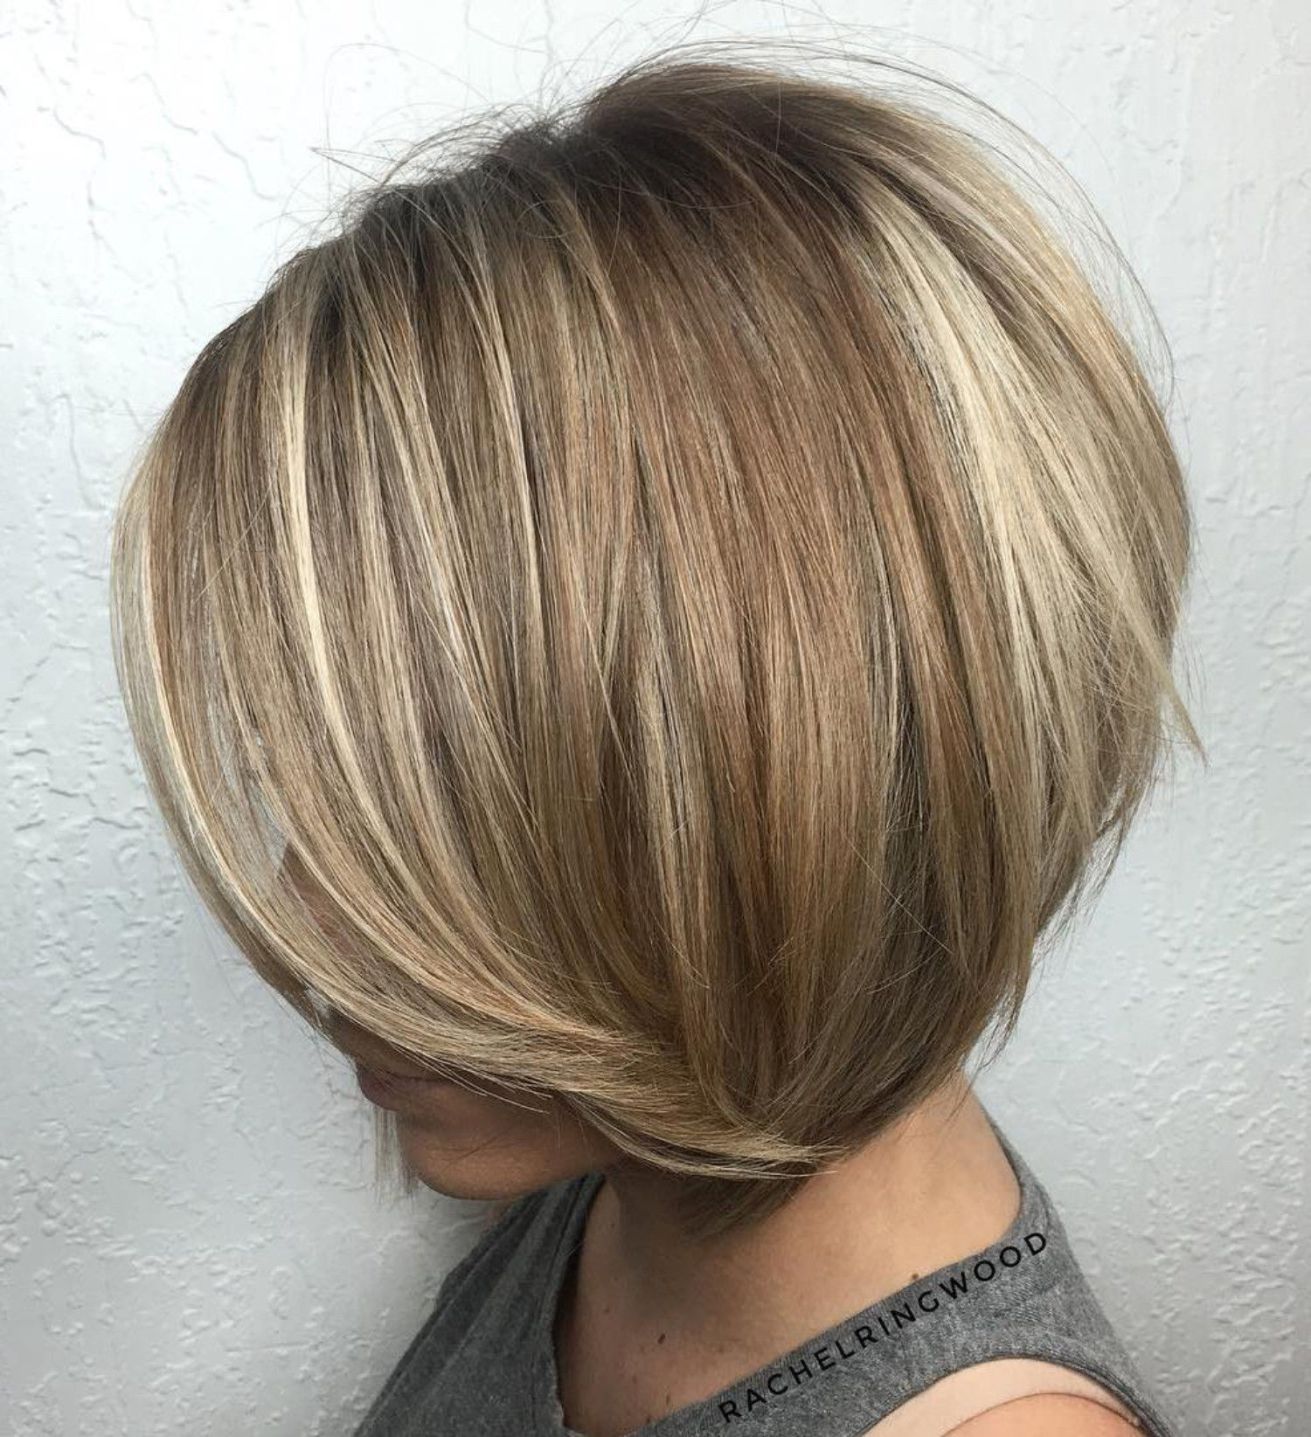 100 Mind Blowing Short Hairstyles For Fine Hair Highlights